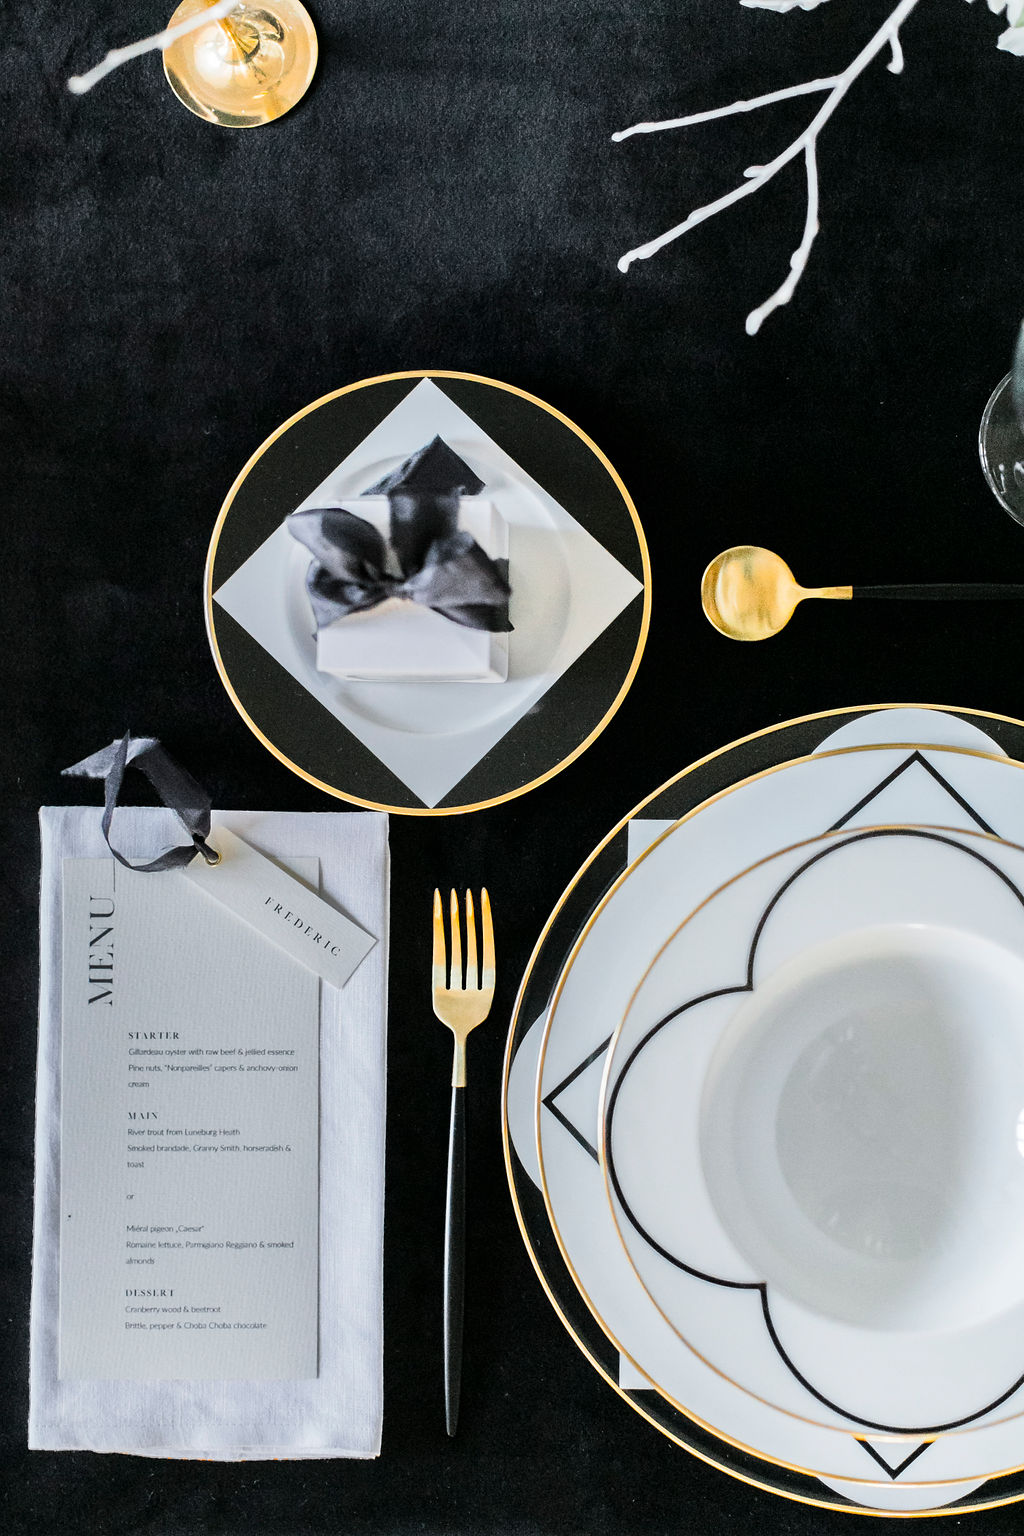 kloster-woeltingerode-black-white-wedding-table-decoration-2